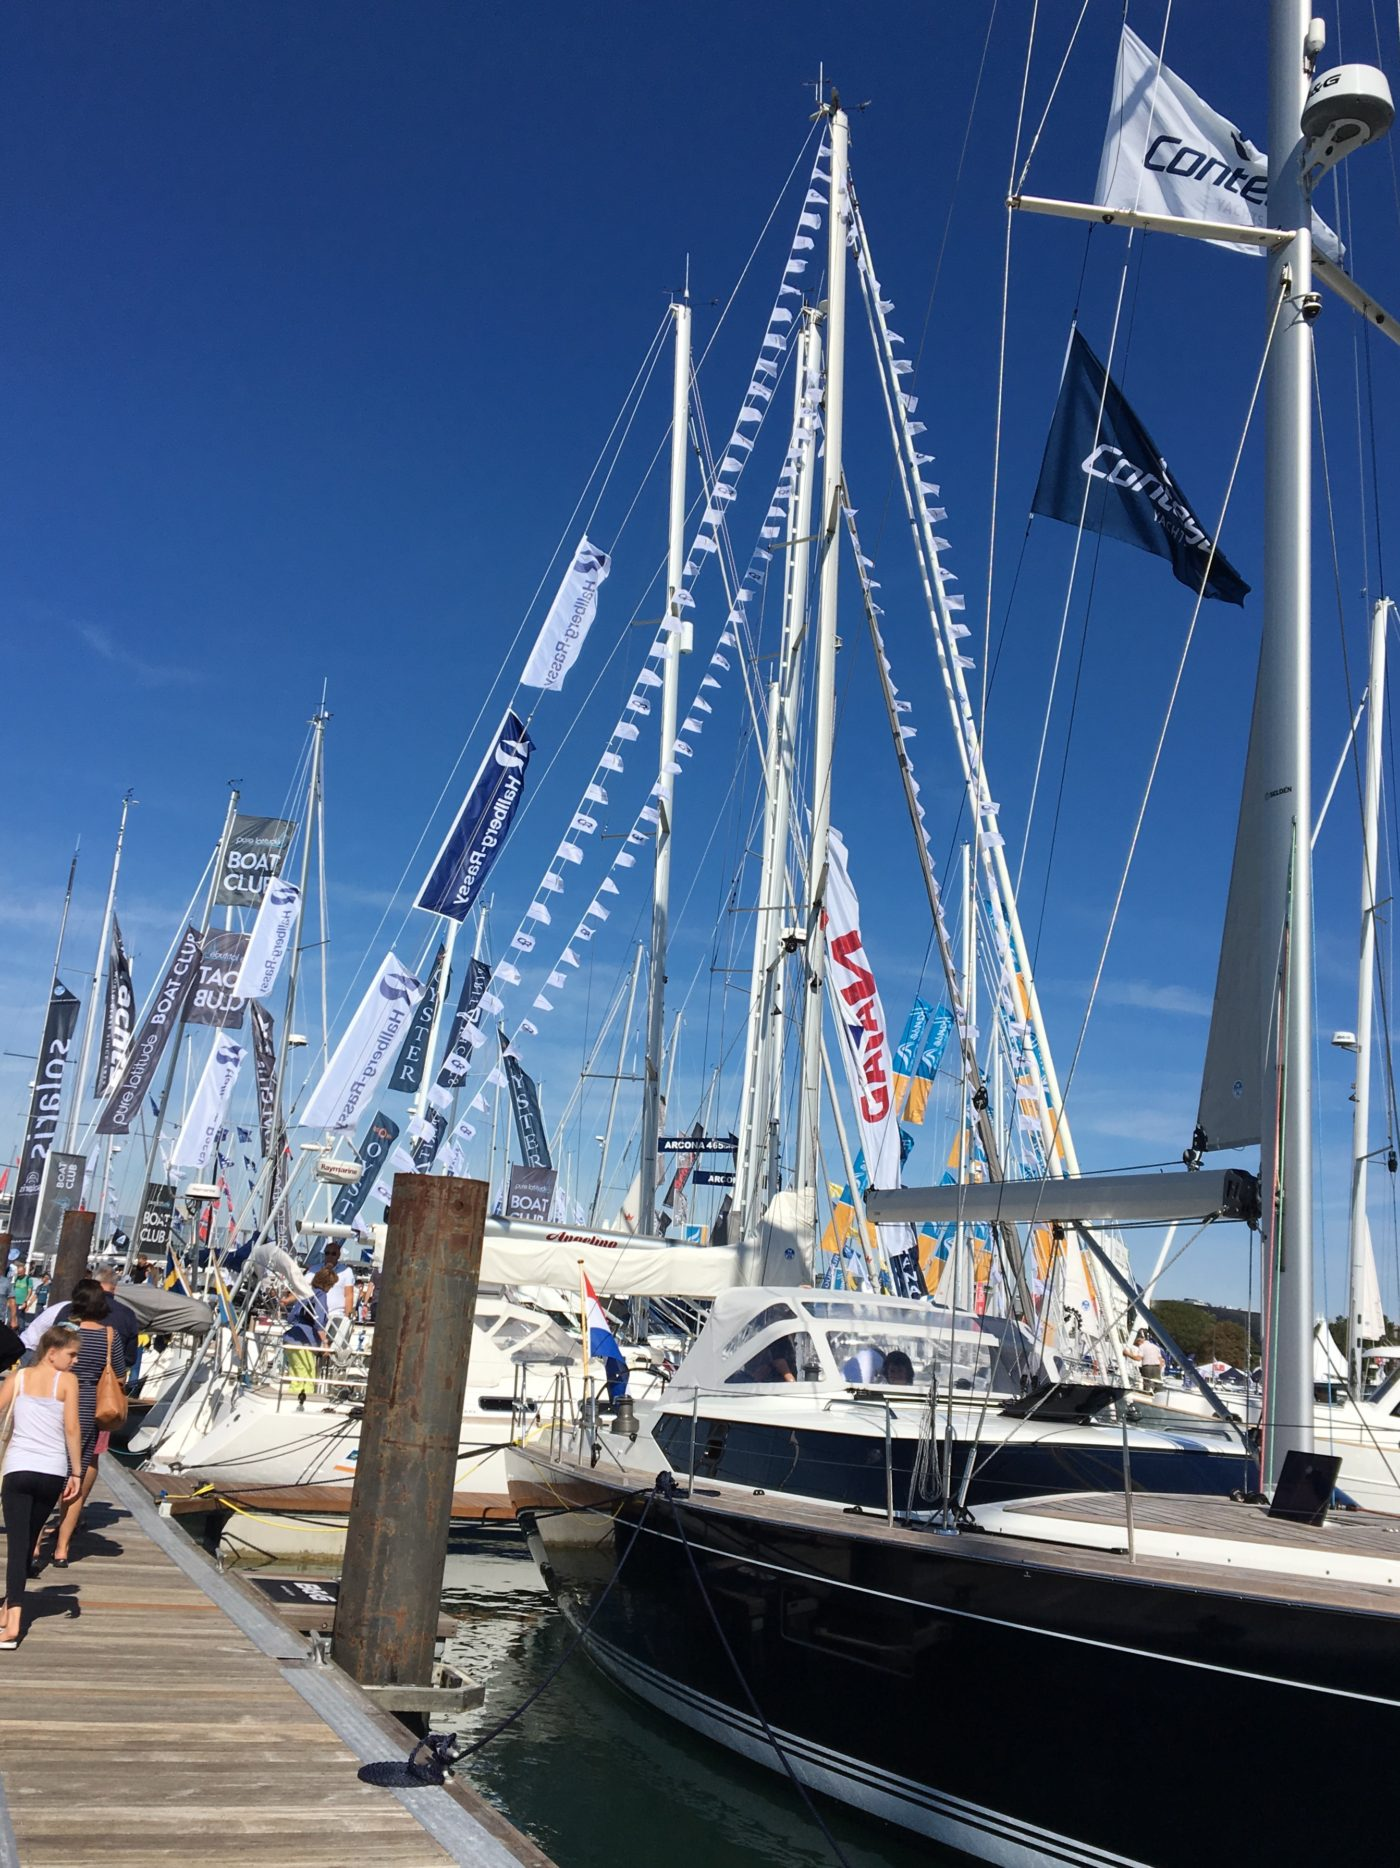 Things to do at the Southampton Boat Show